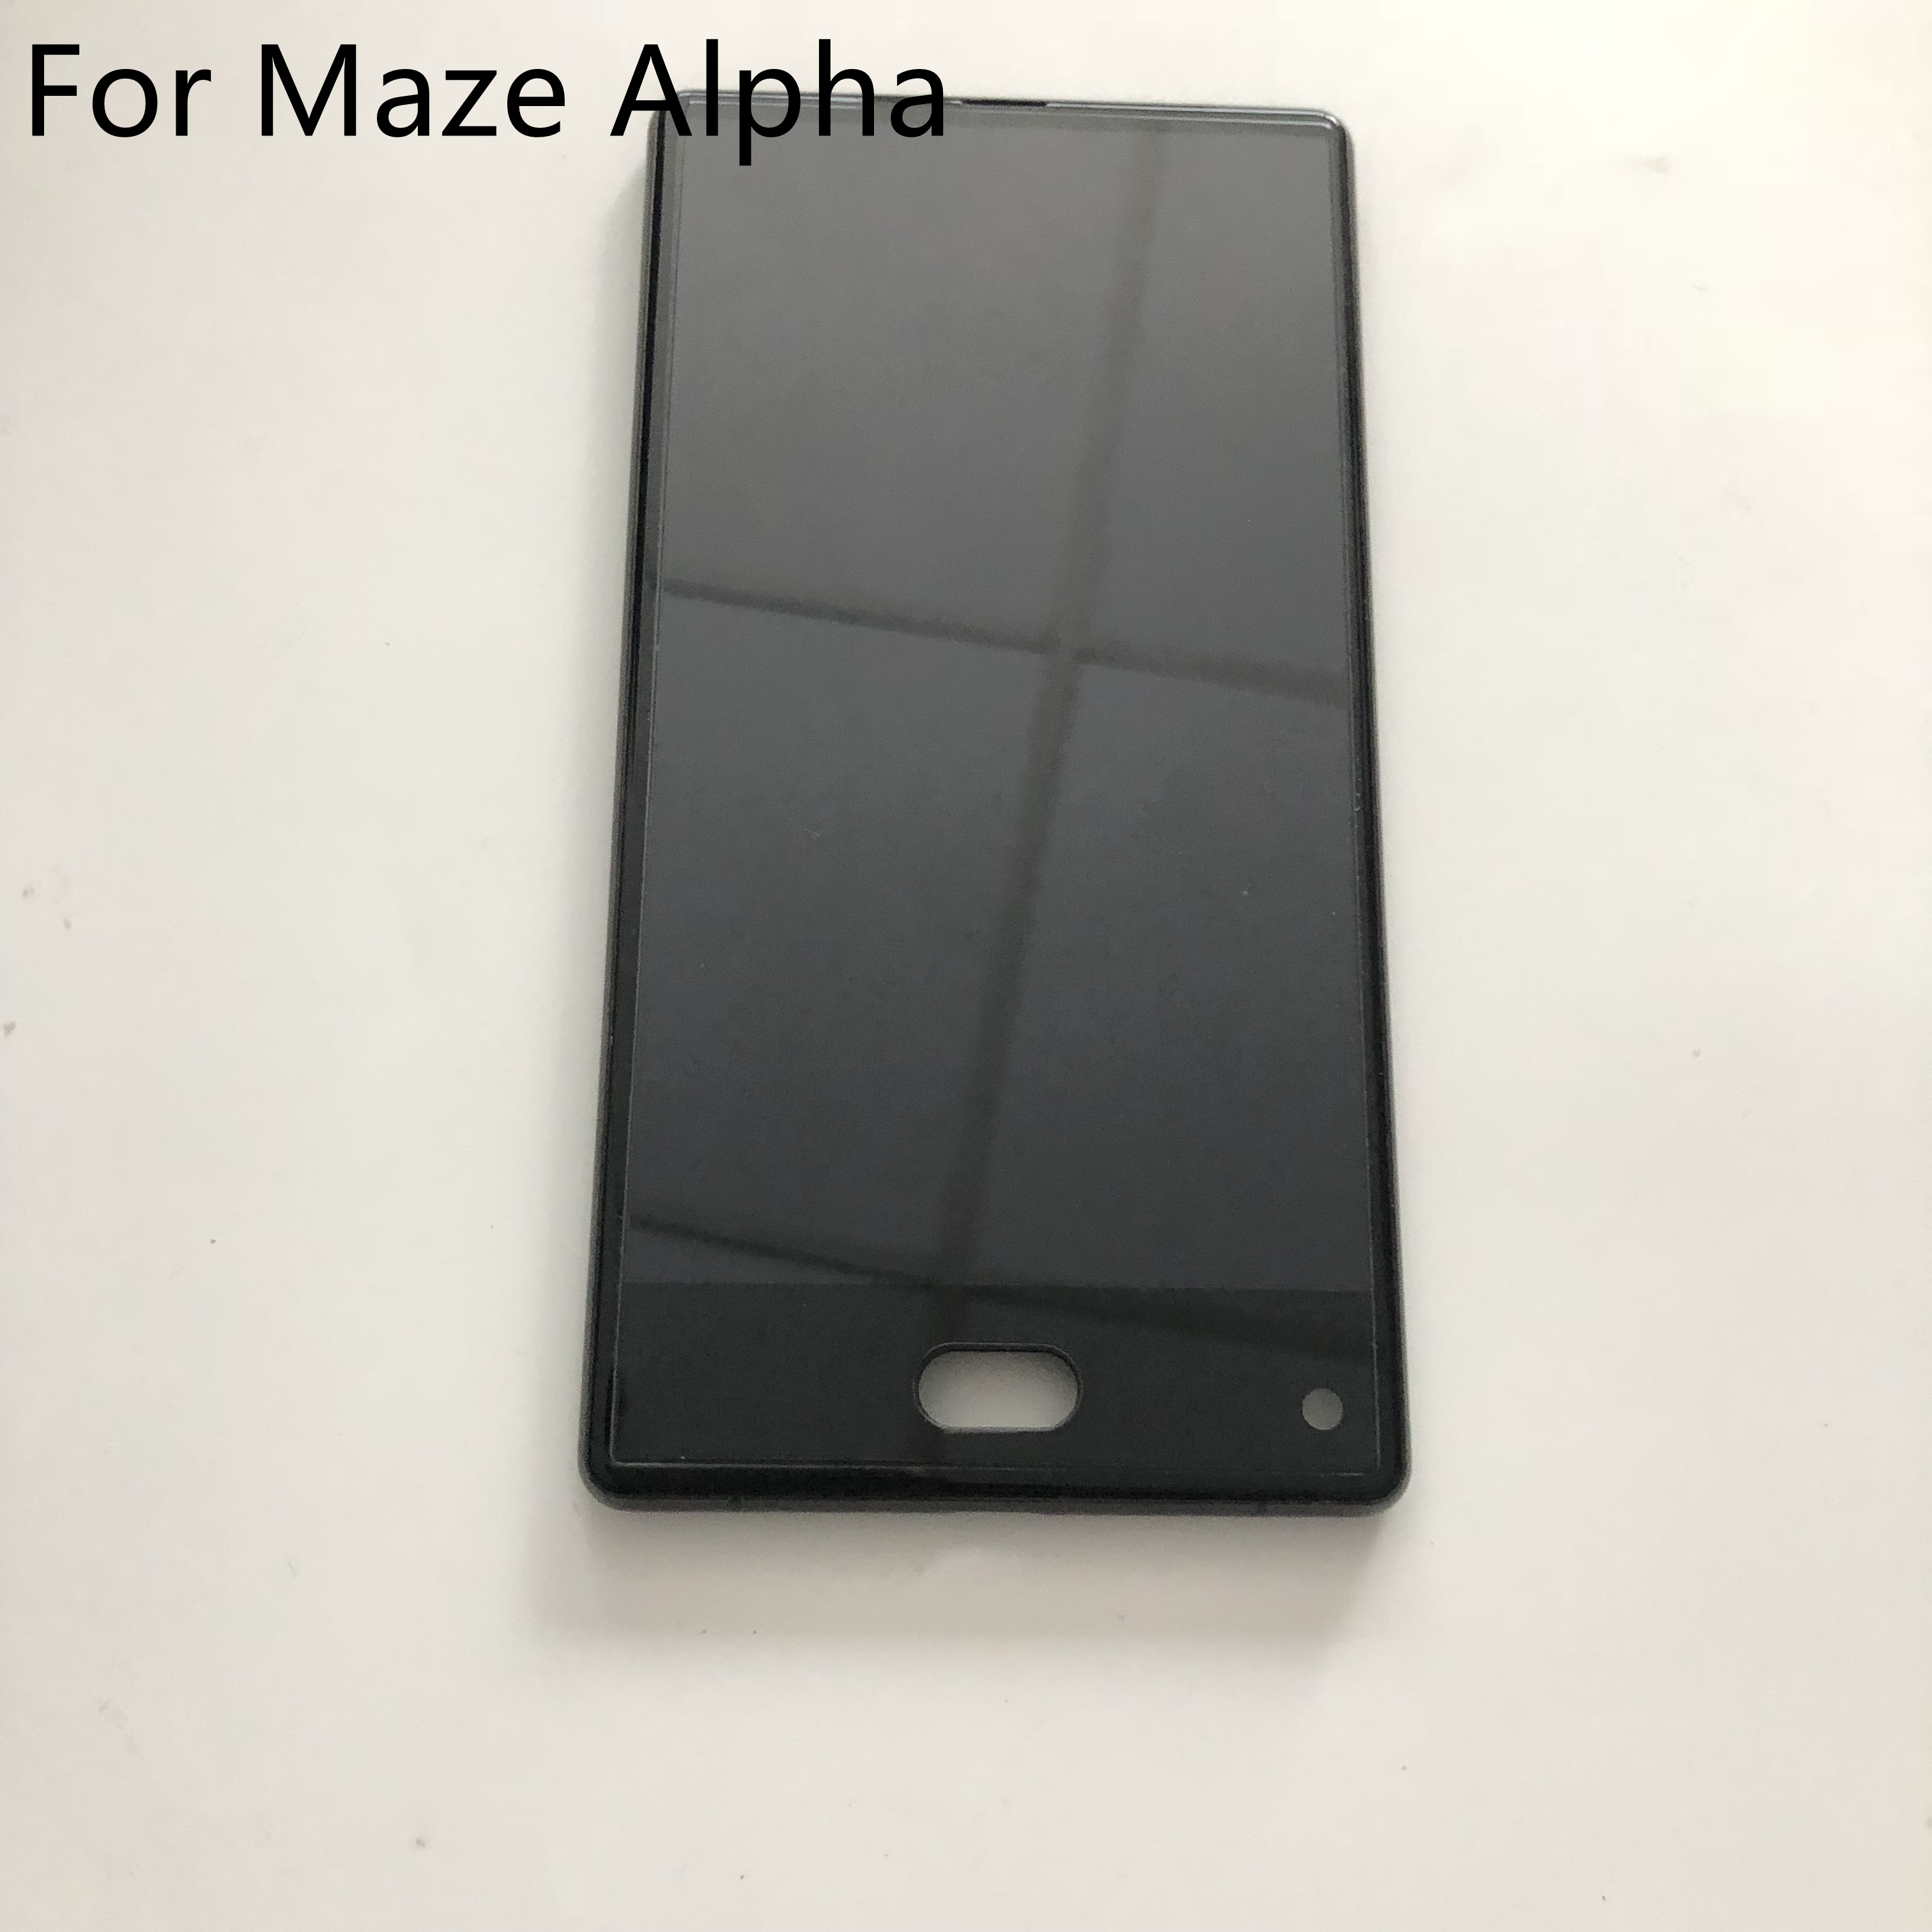 "Used LCD Display Screen + Touch Screen + Frame For MAZE ALPHA Helio P25 2.5GHz Octa Core 6.0"" 2.5D FHD 1920x1080 Smartphone"